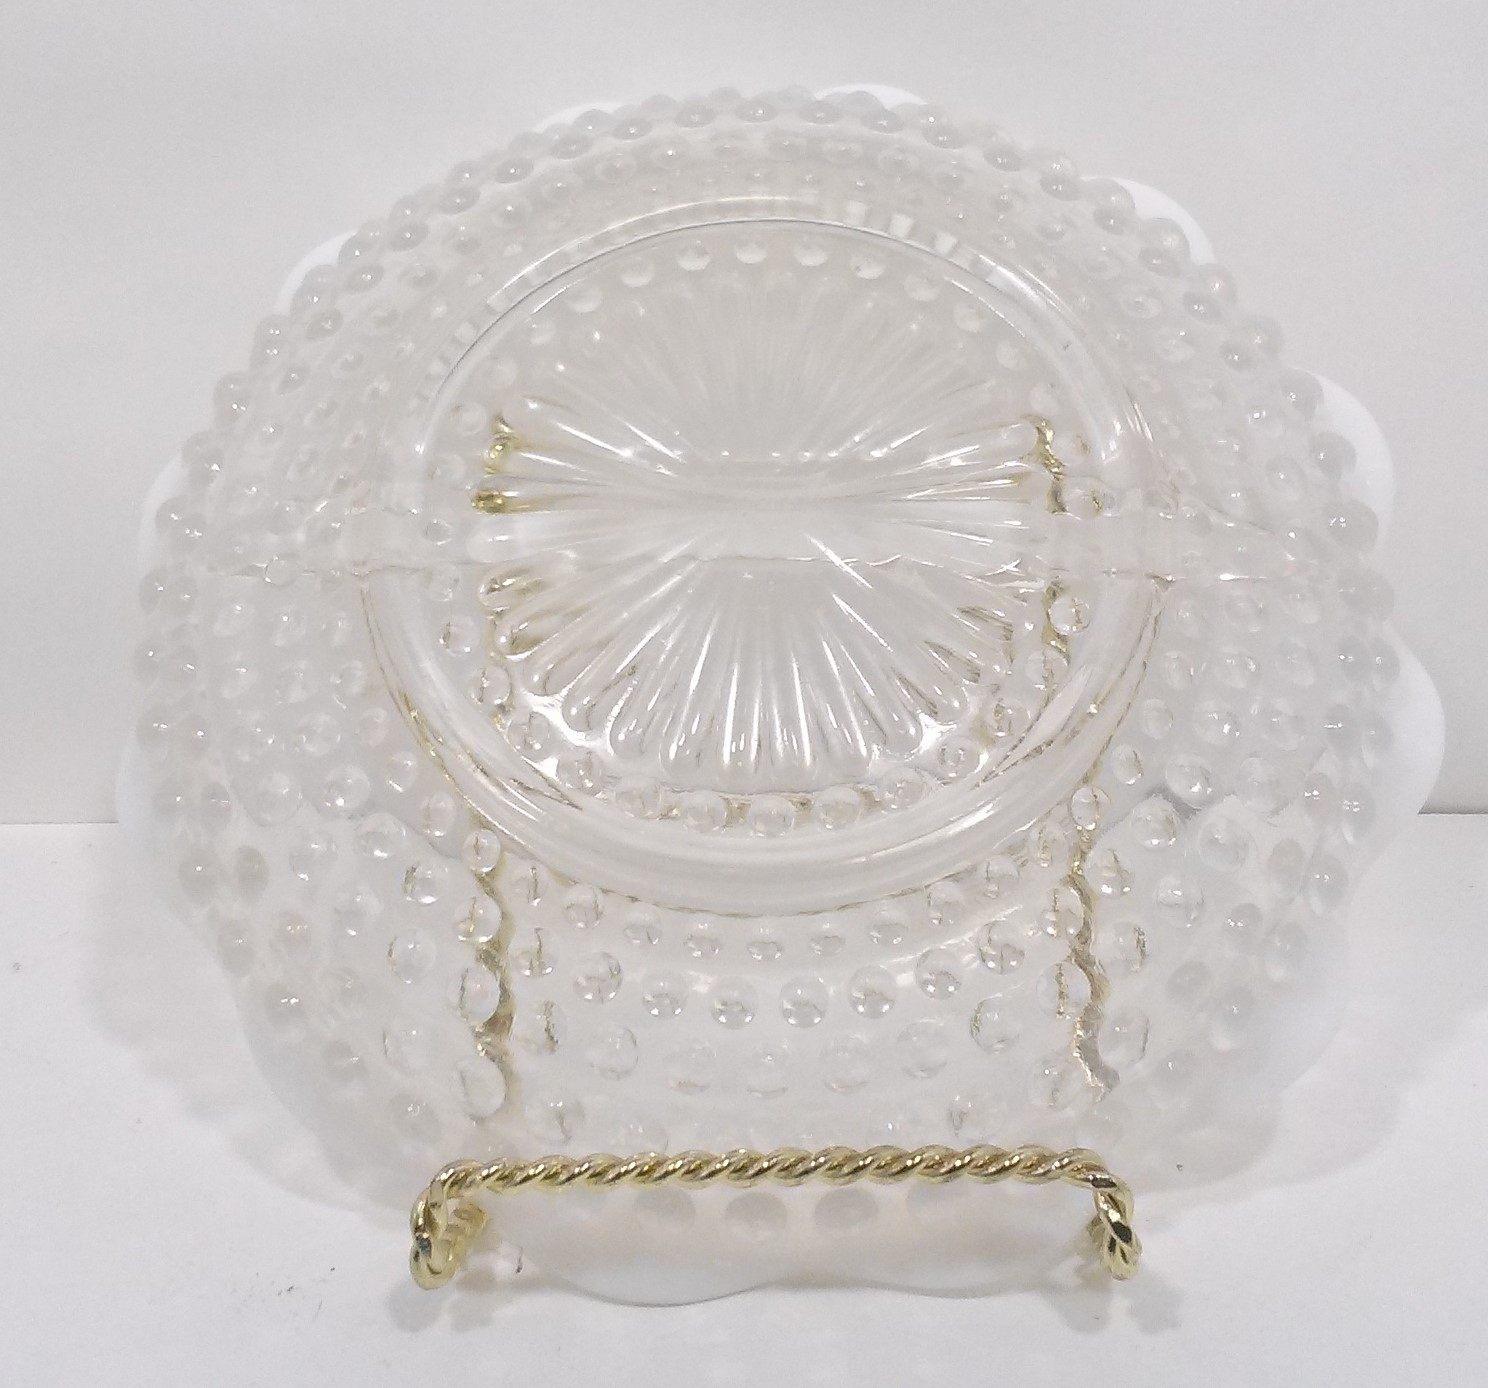 Anchor Hocking Moonstone 2 Part Relish Dish Opalescent crimped ruffled edges